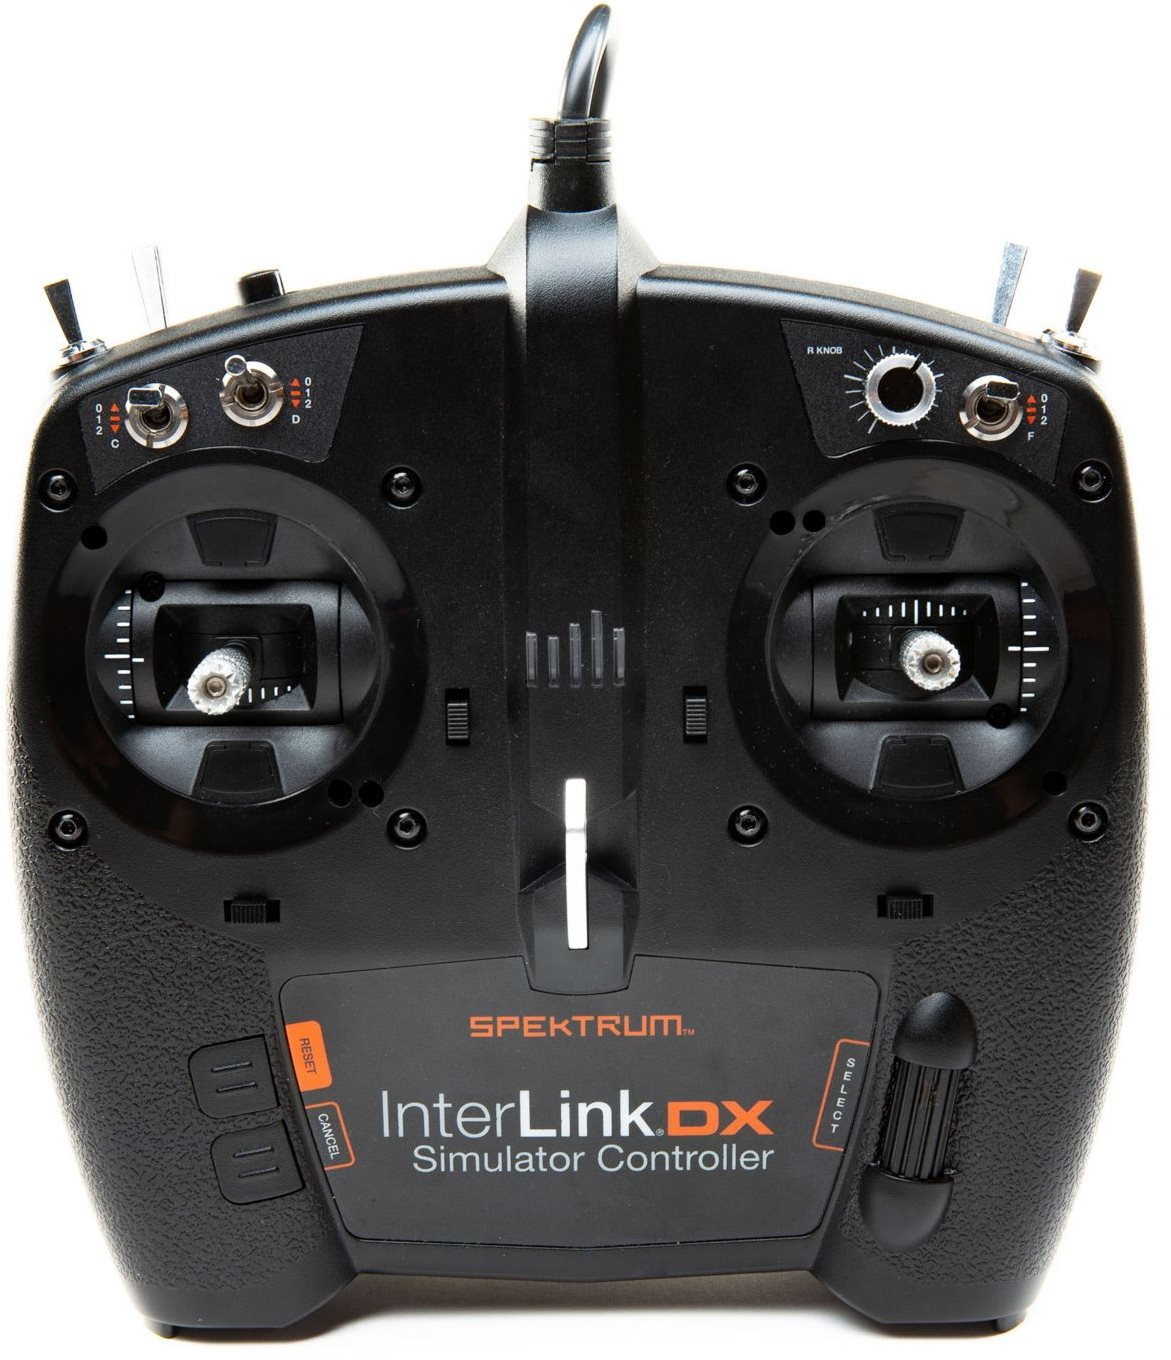 Spektrum InterLink DX Simulator Controller with USB Plug